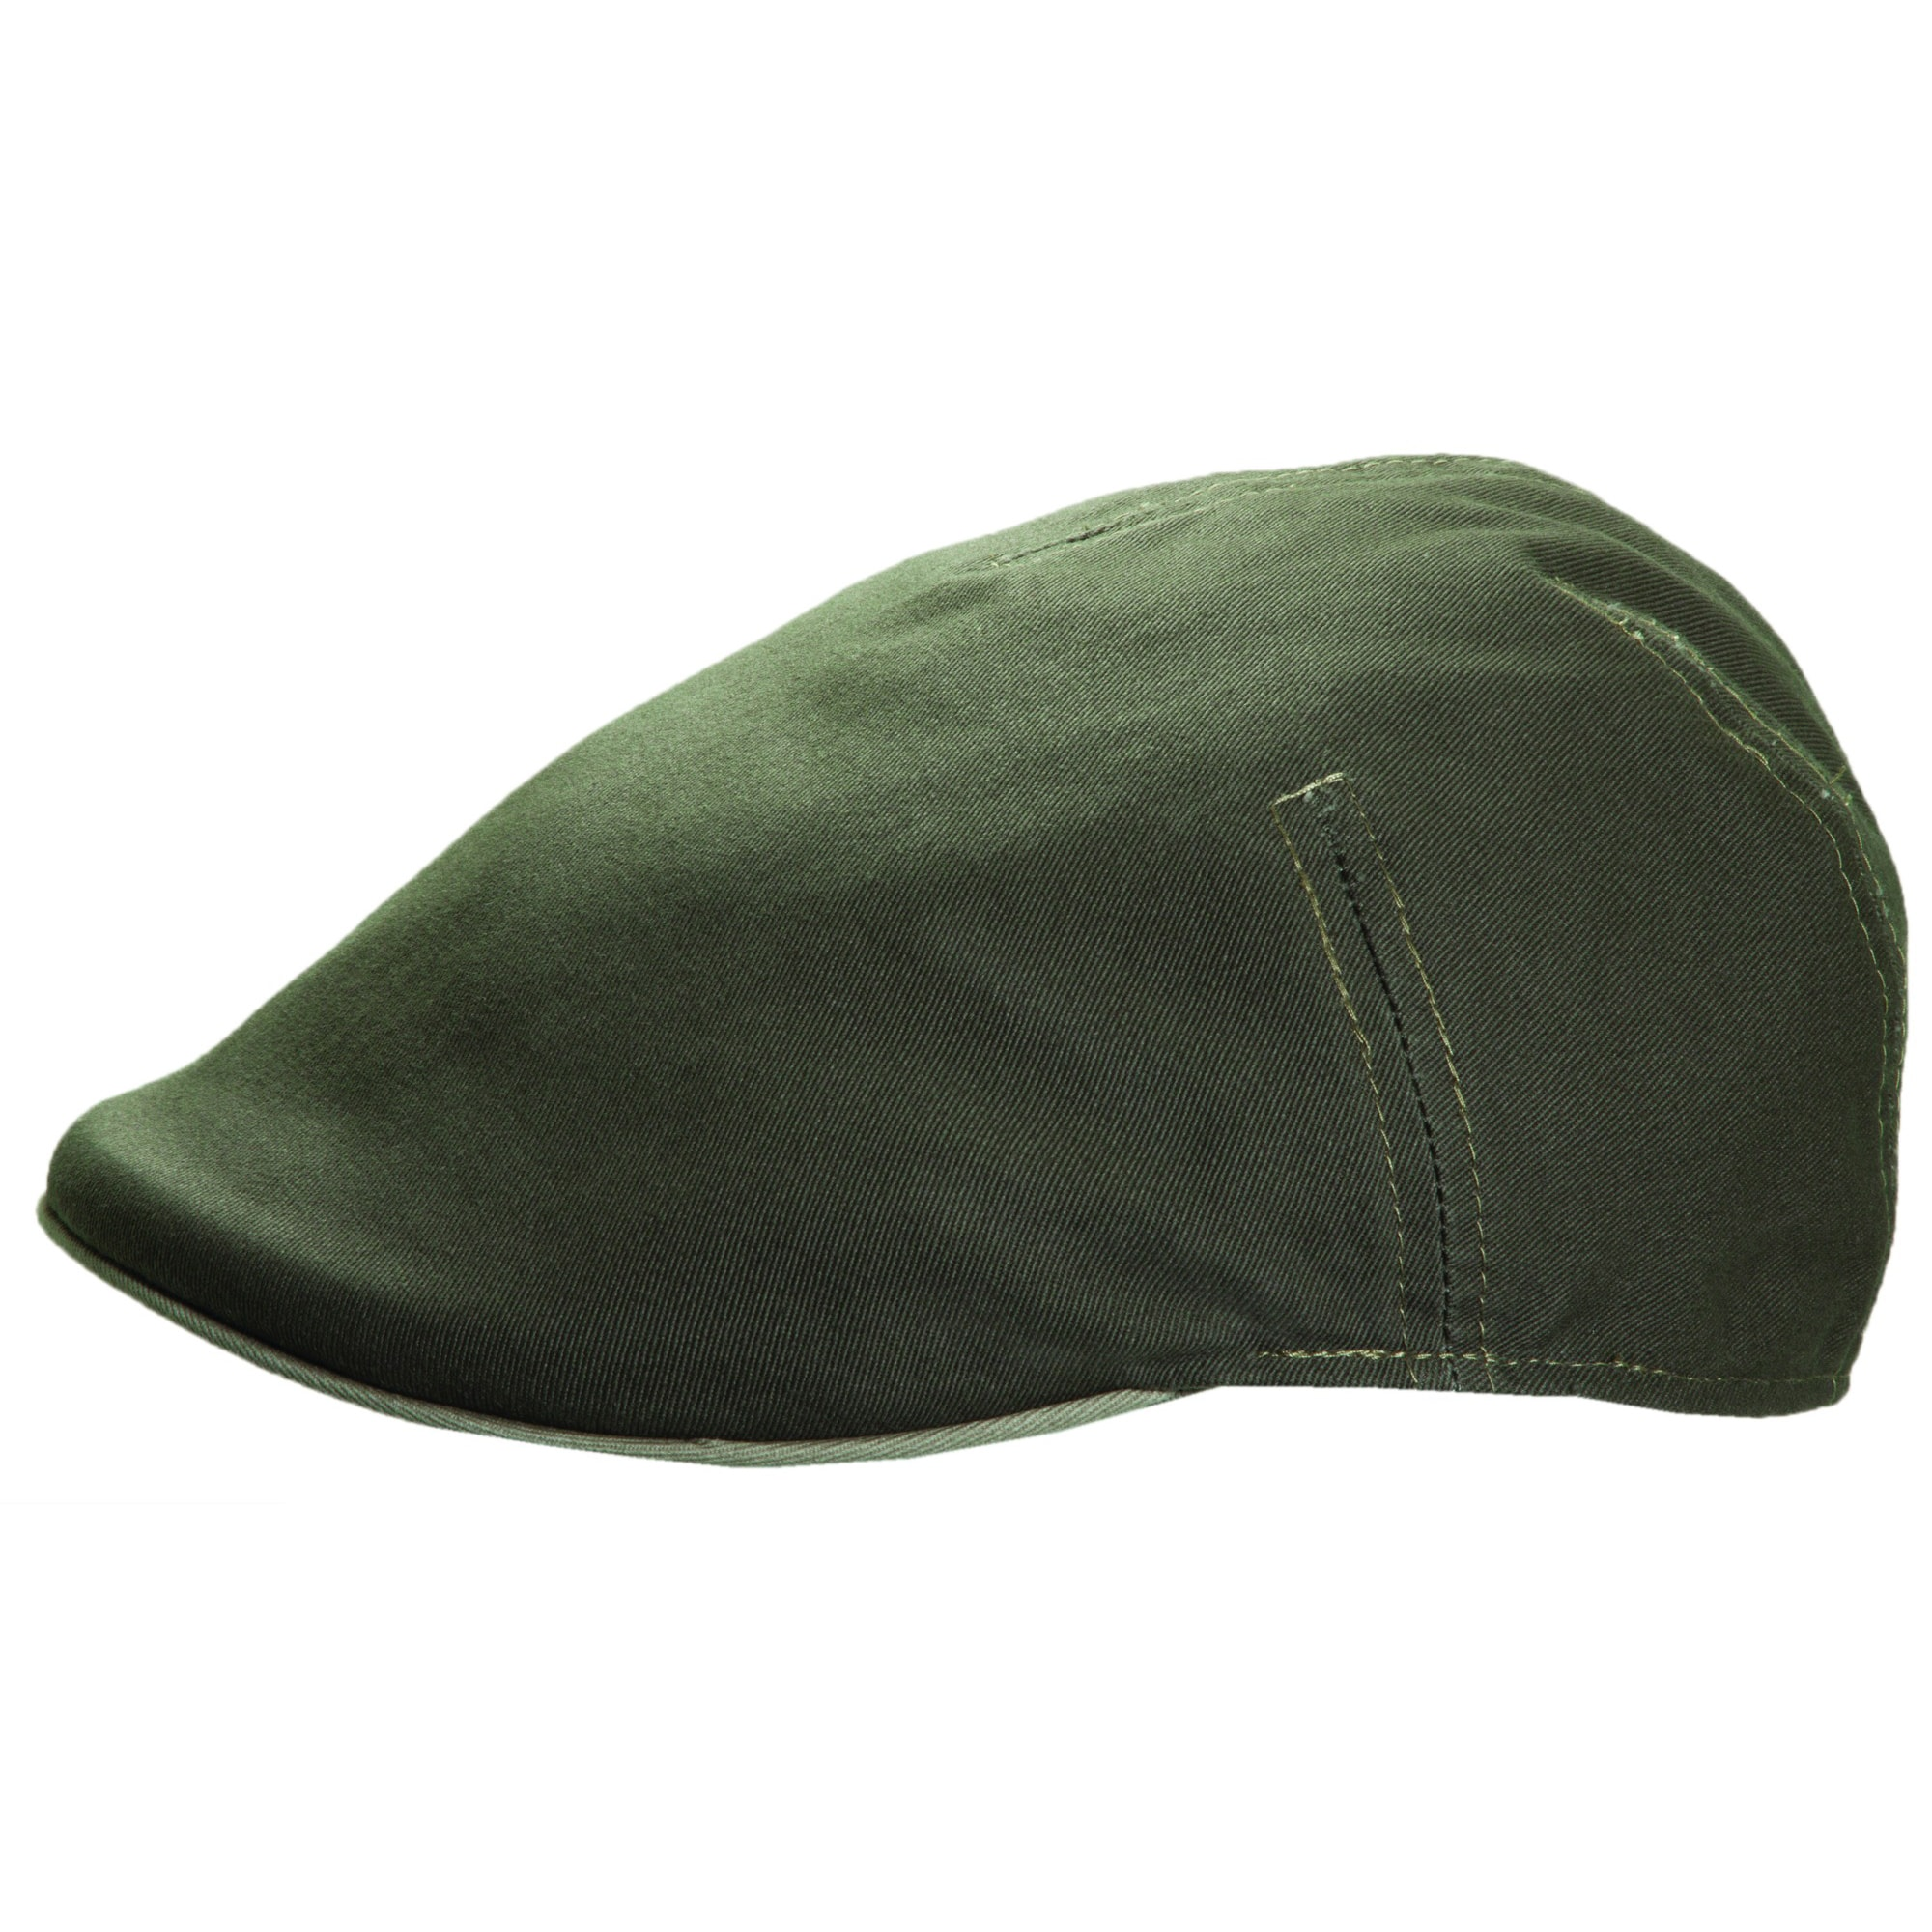 Stetson Men's Olive Green Twill Cap